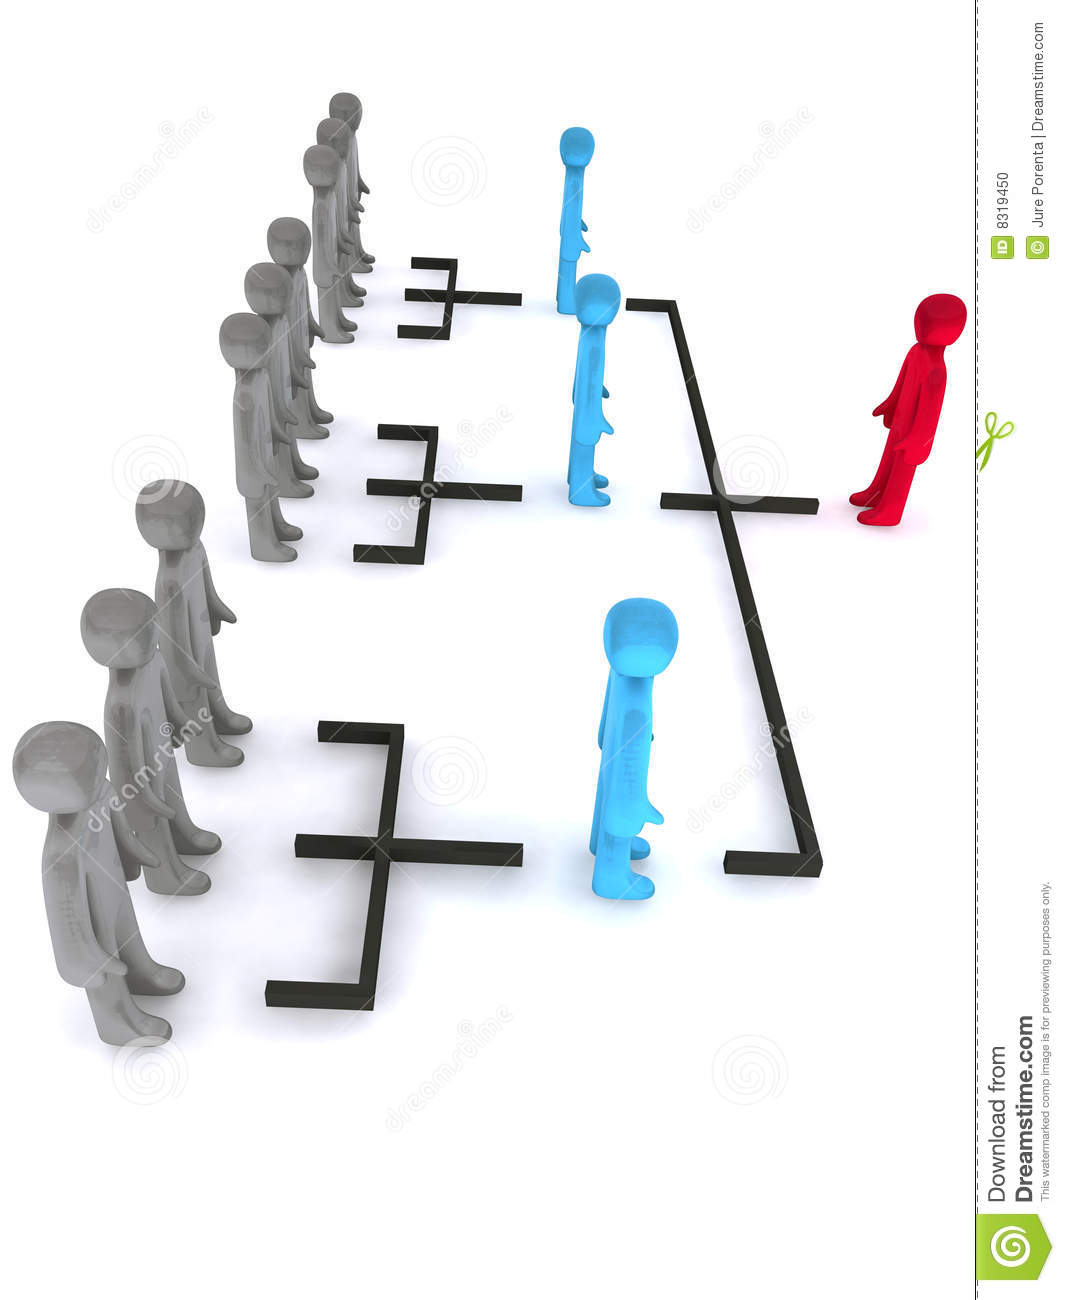 What Organizational Structure Is Best for a Fast Food Restaurant?